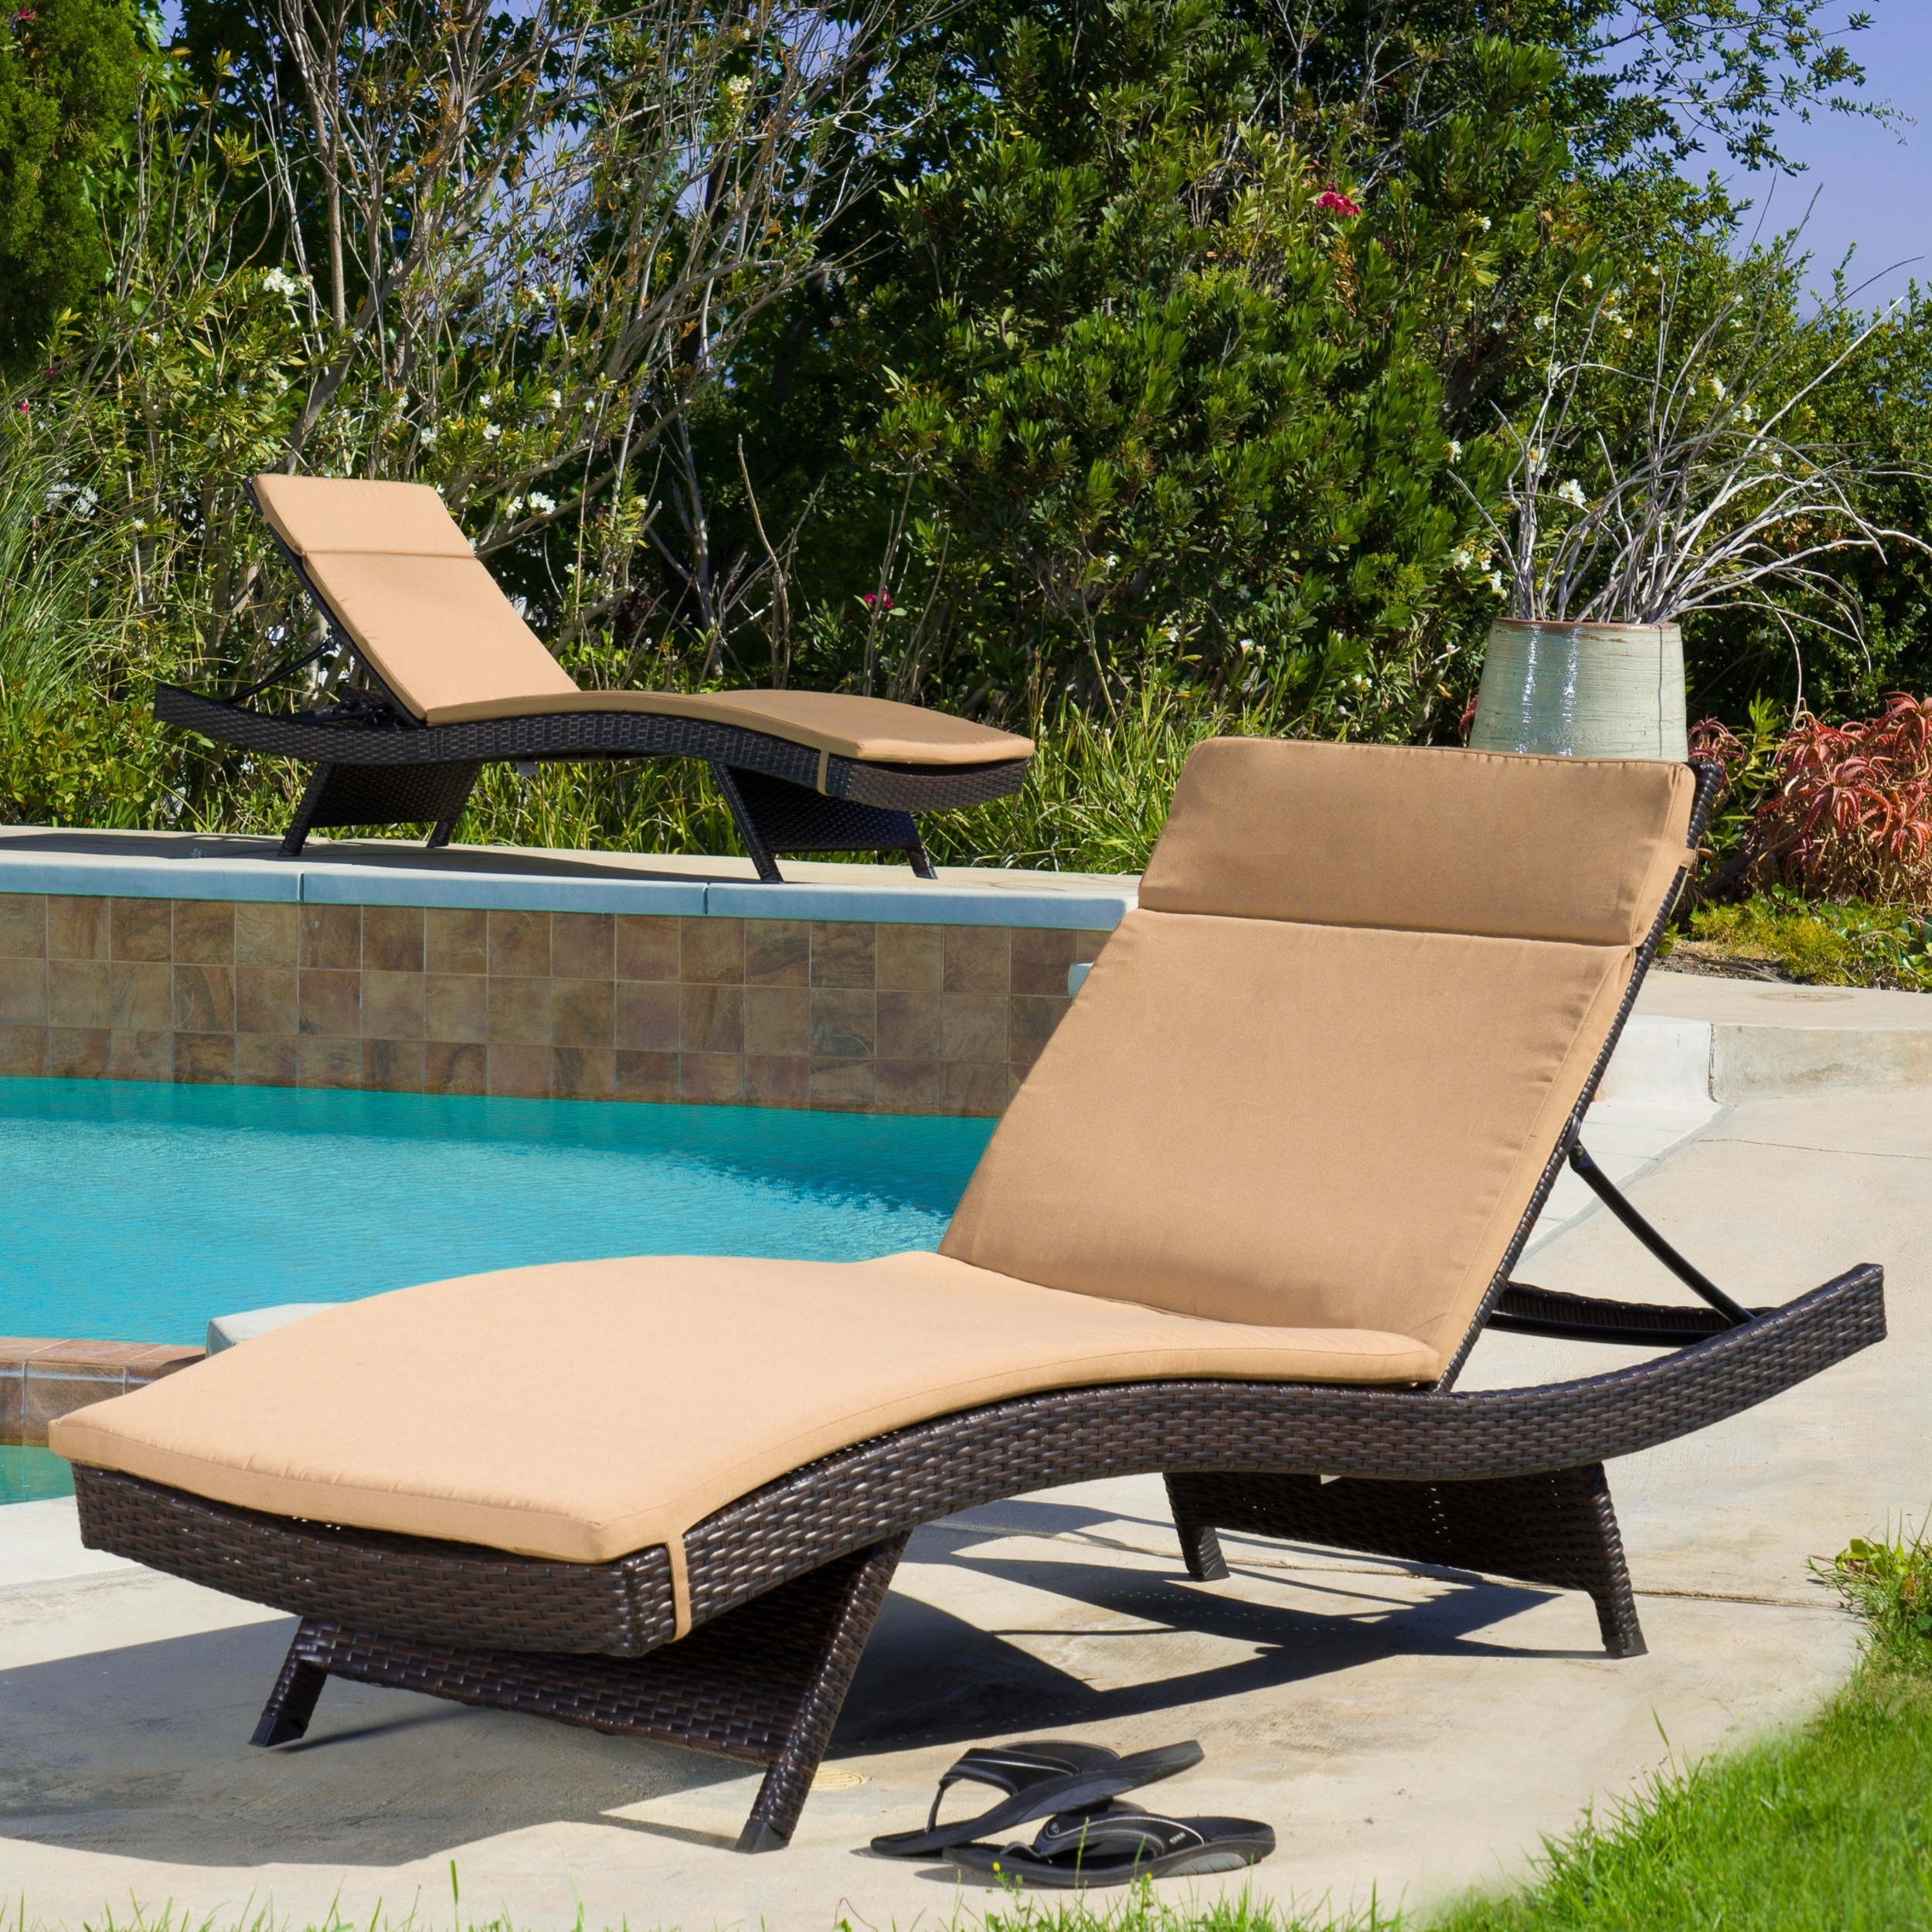 Chaise Lounge Chair Cushions For 2017 Patio Chaise Lounge As The Must Have Furniture In Your Pool Deck (View 2 of 15)